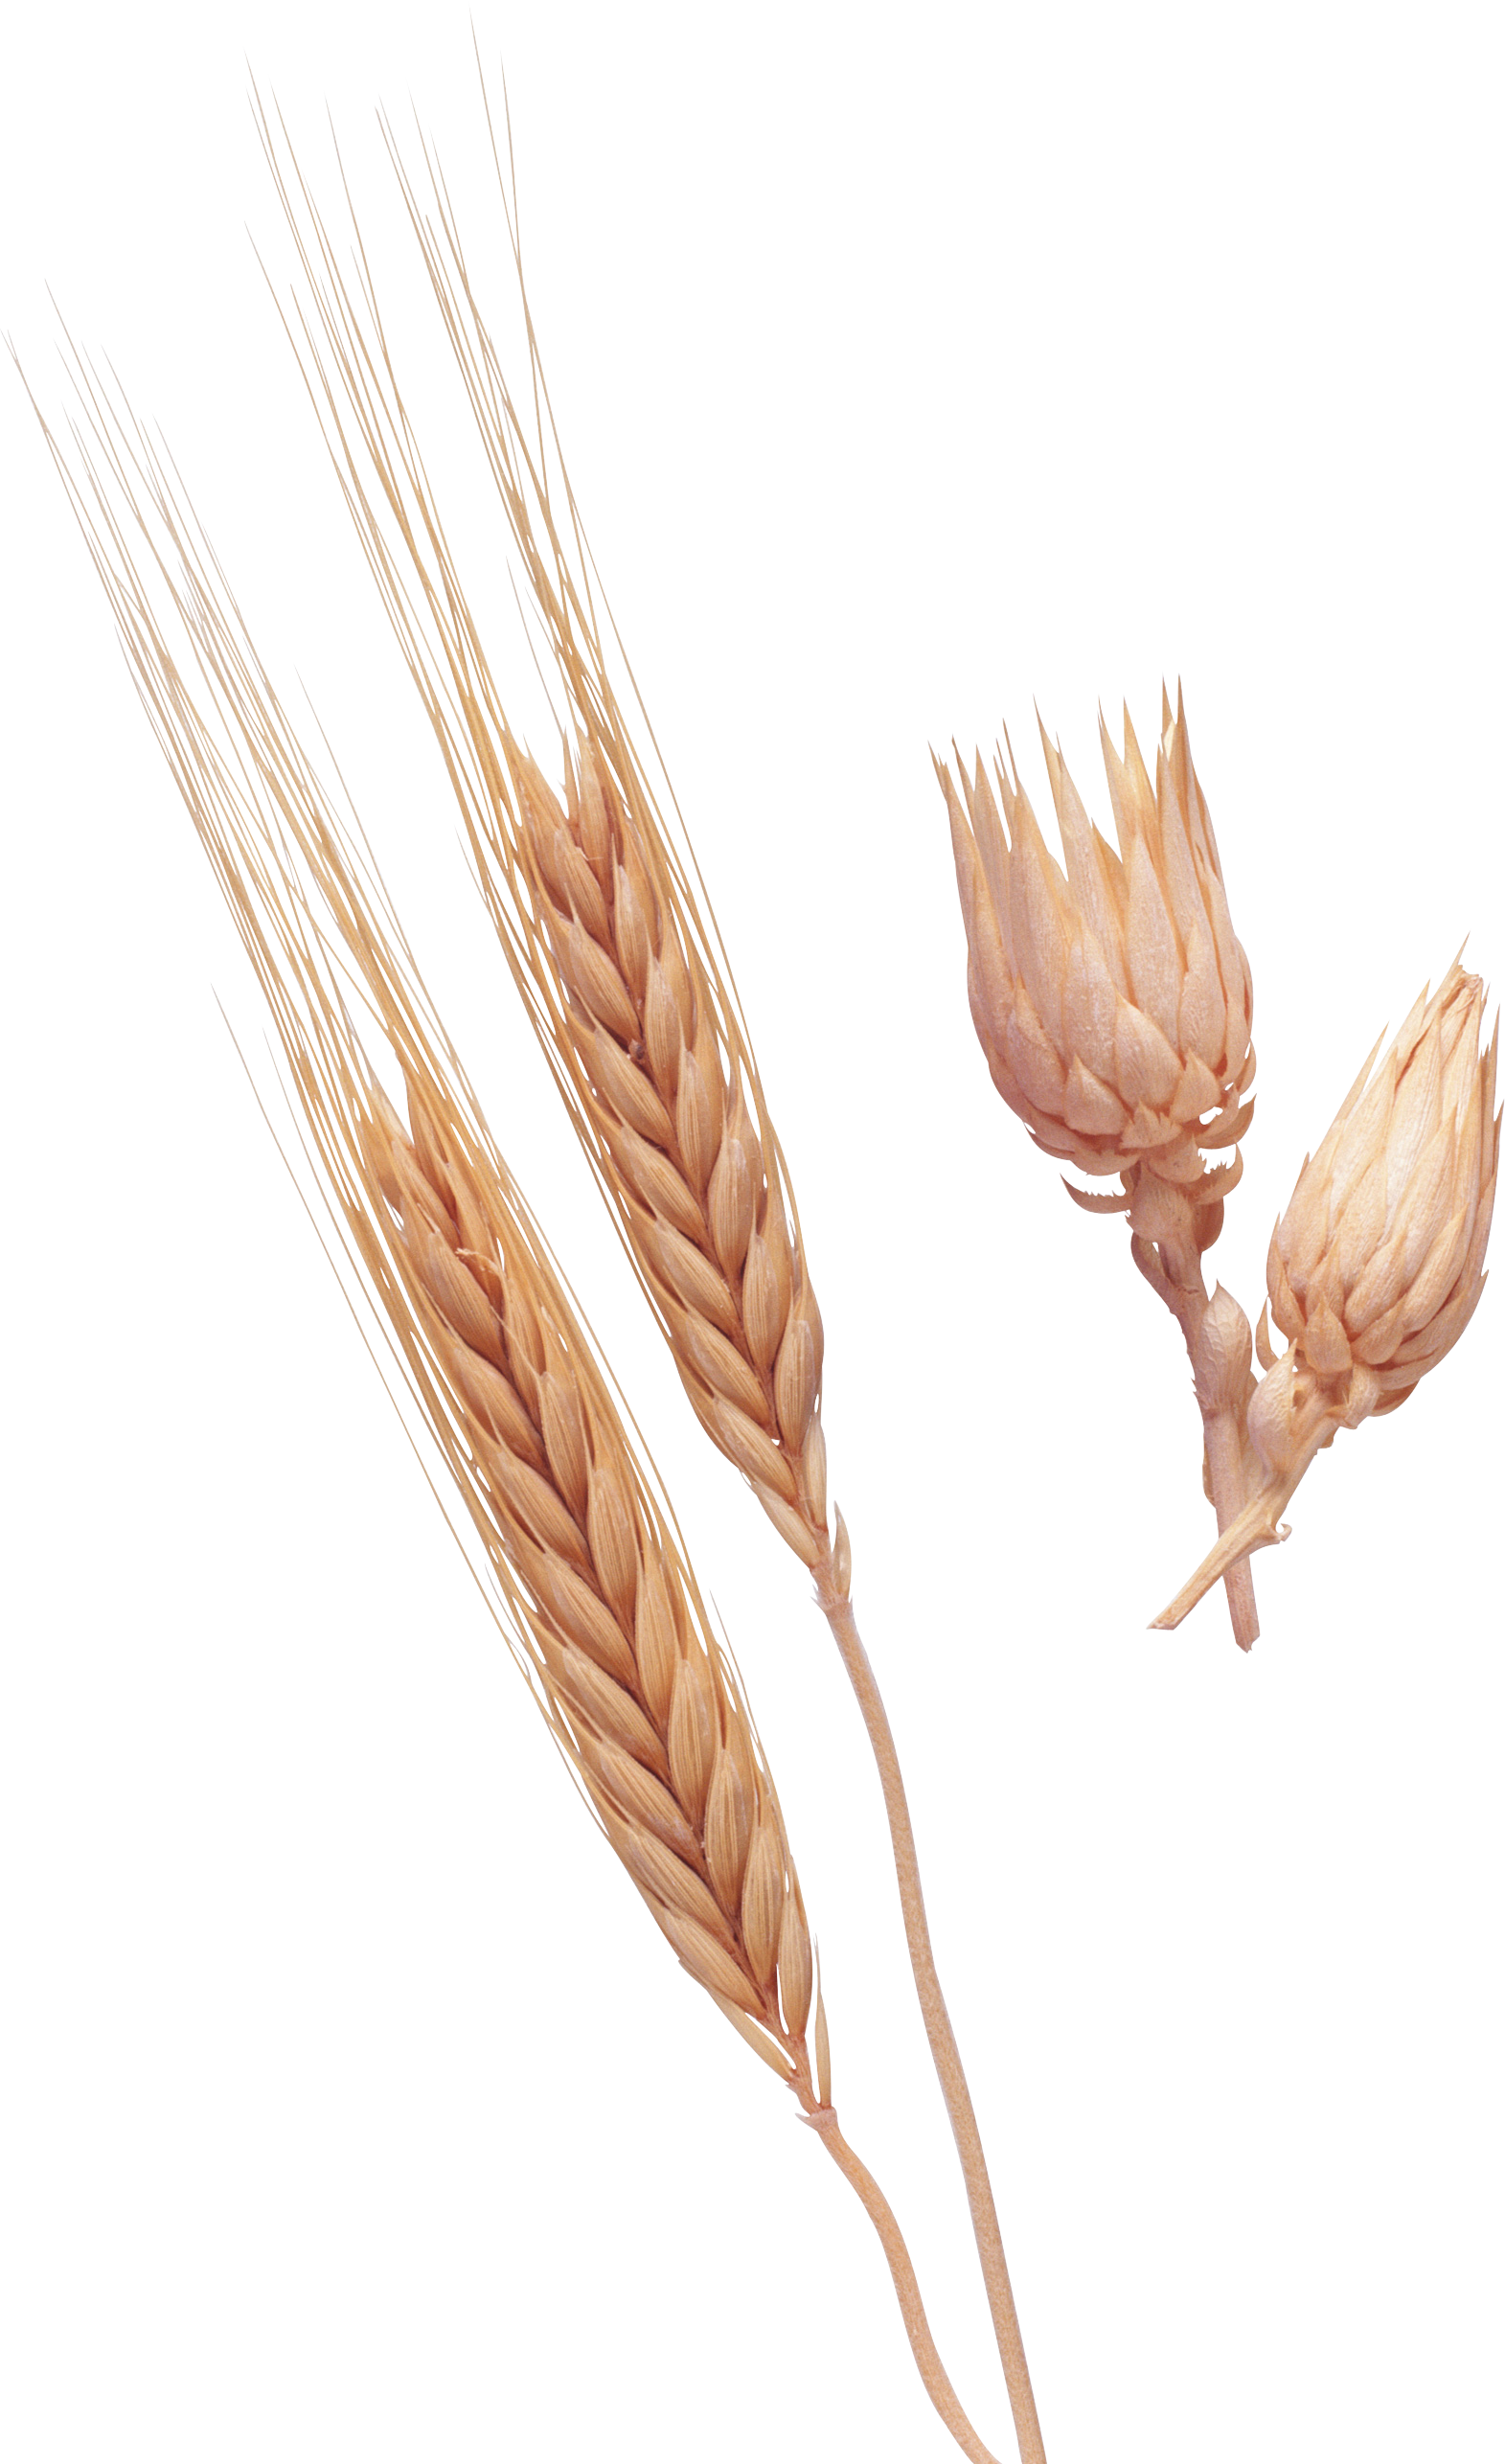 Wheat Png Image Purepng - Dinkel Wheat Clipart (1571x2572), Png Download